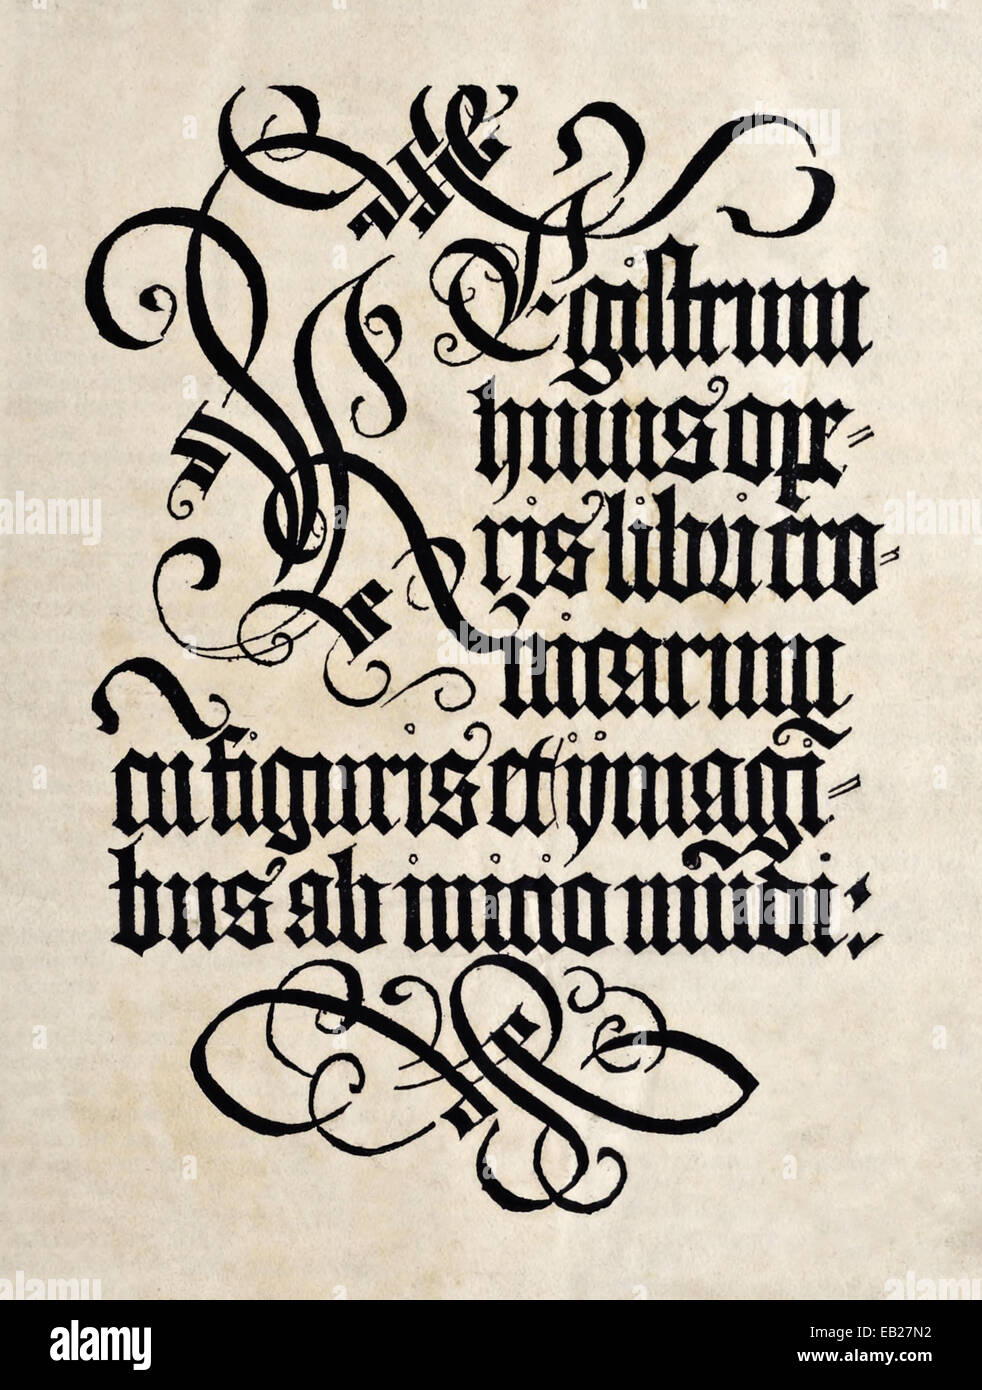 Title page from 'Liber Chronicarum' by Hartmann Schedel (1440-1514). See description for more information. - Stock Image